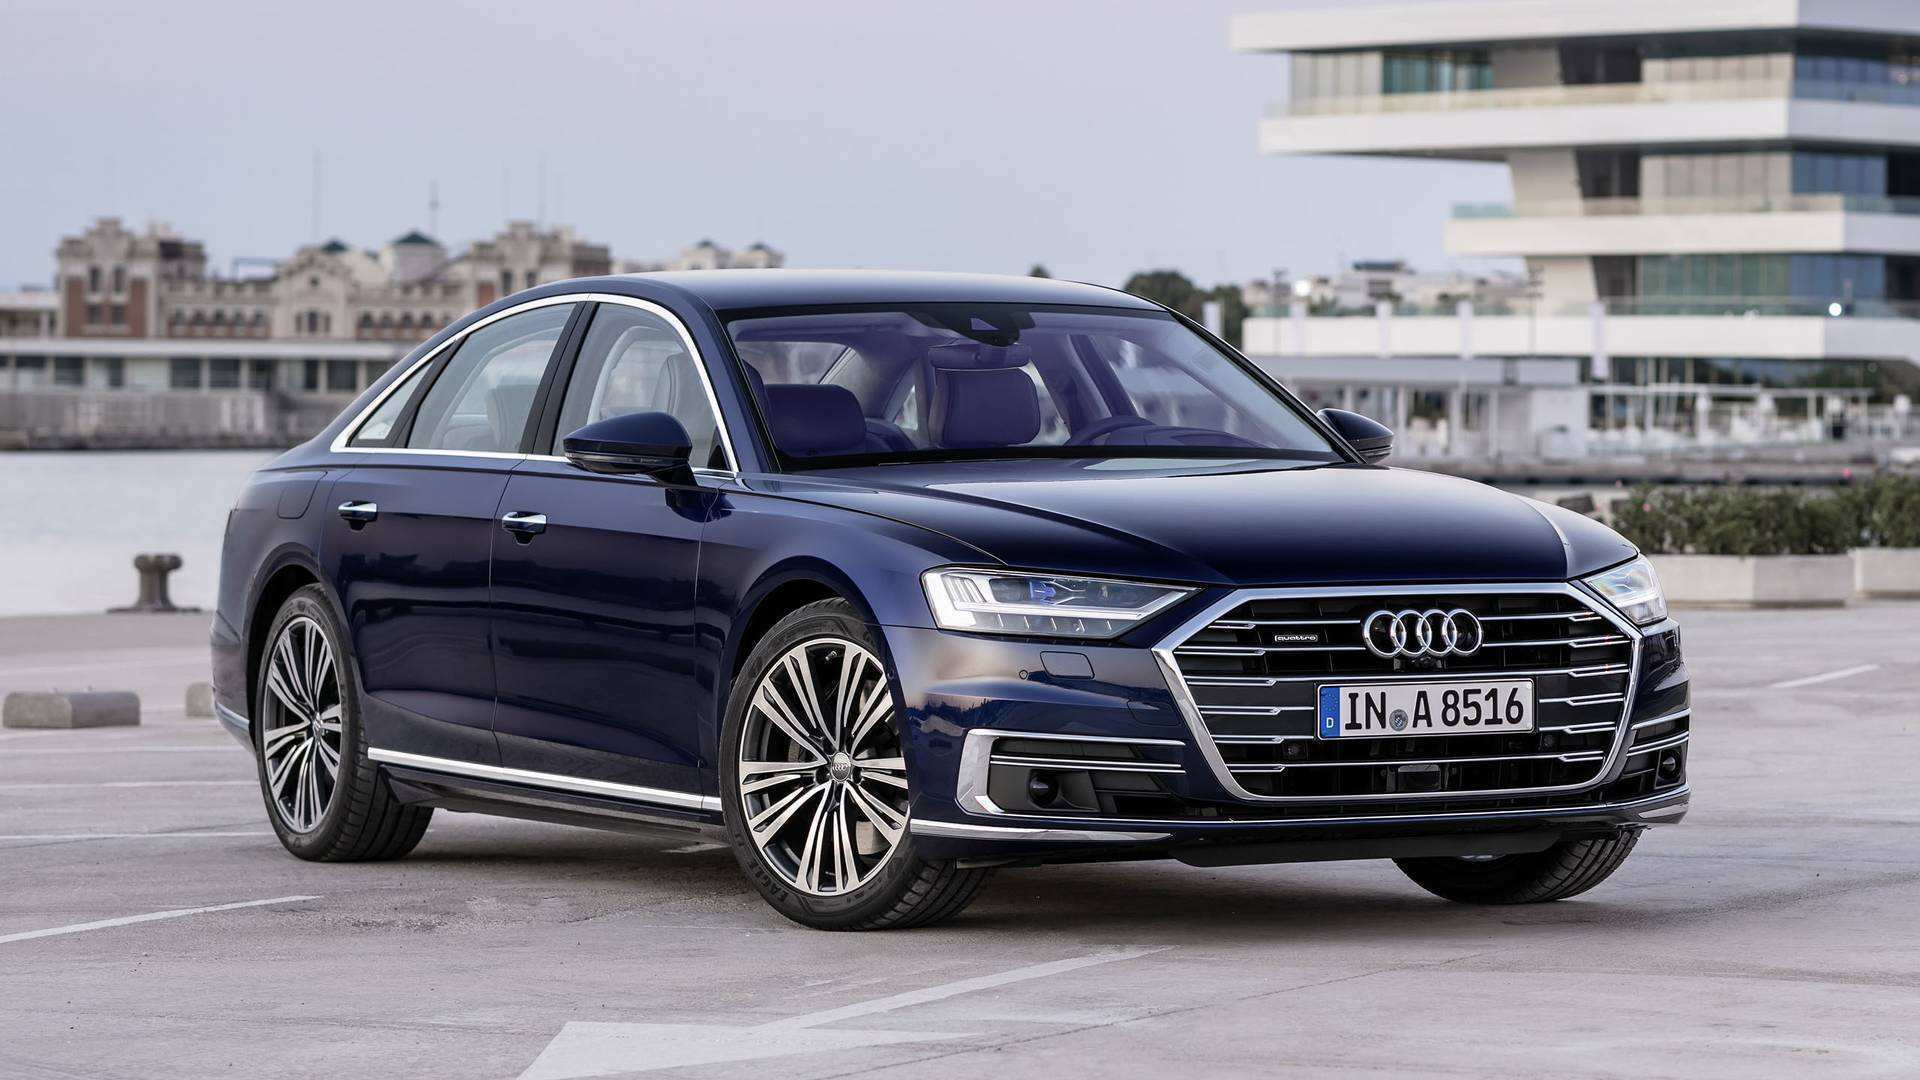 77 The Best 2020 Audi A8 L In Usa Redesign